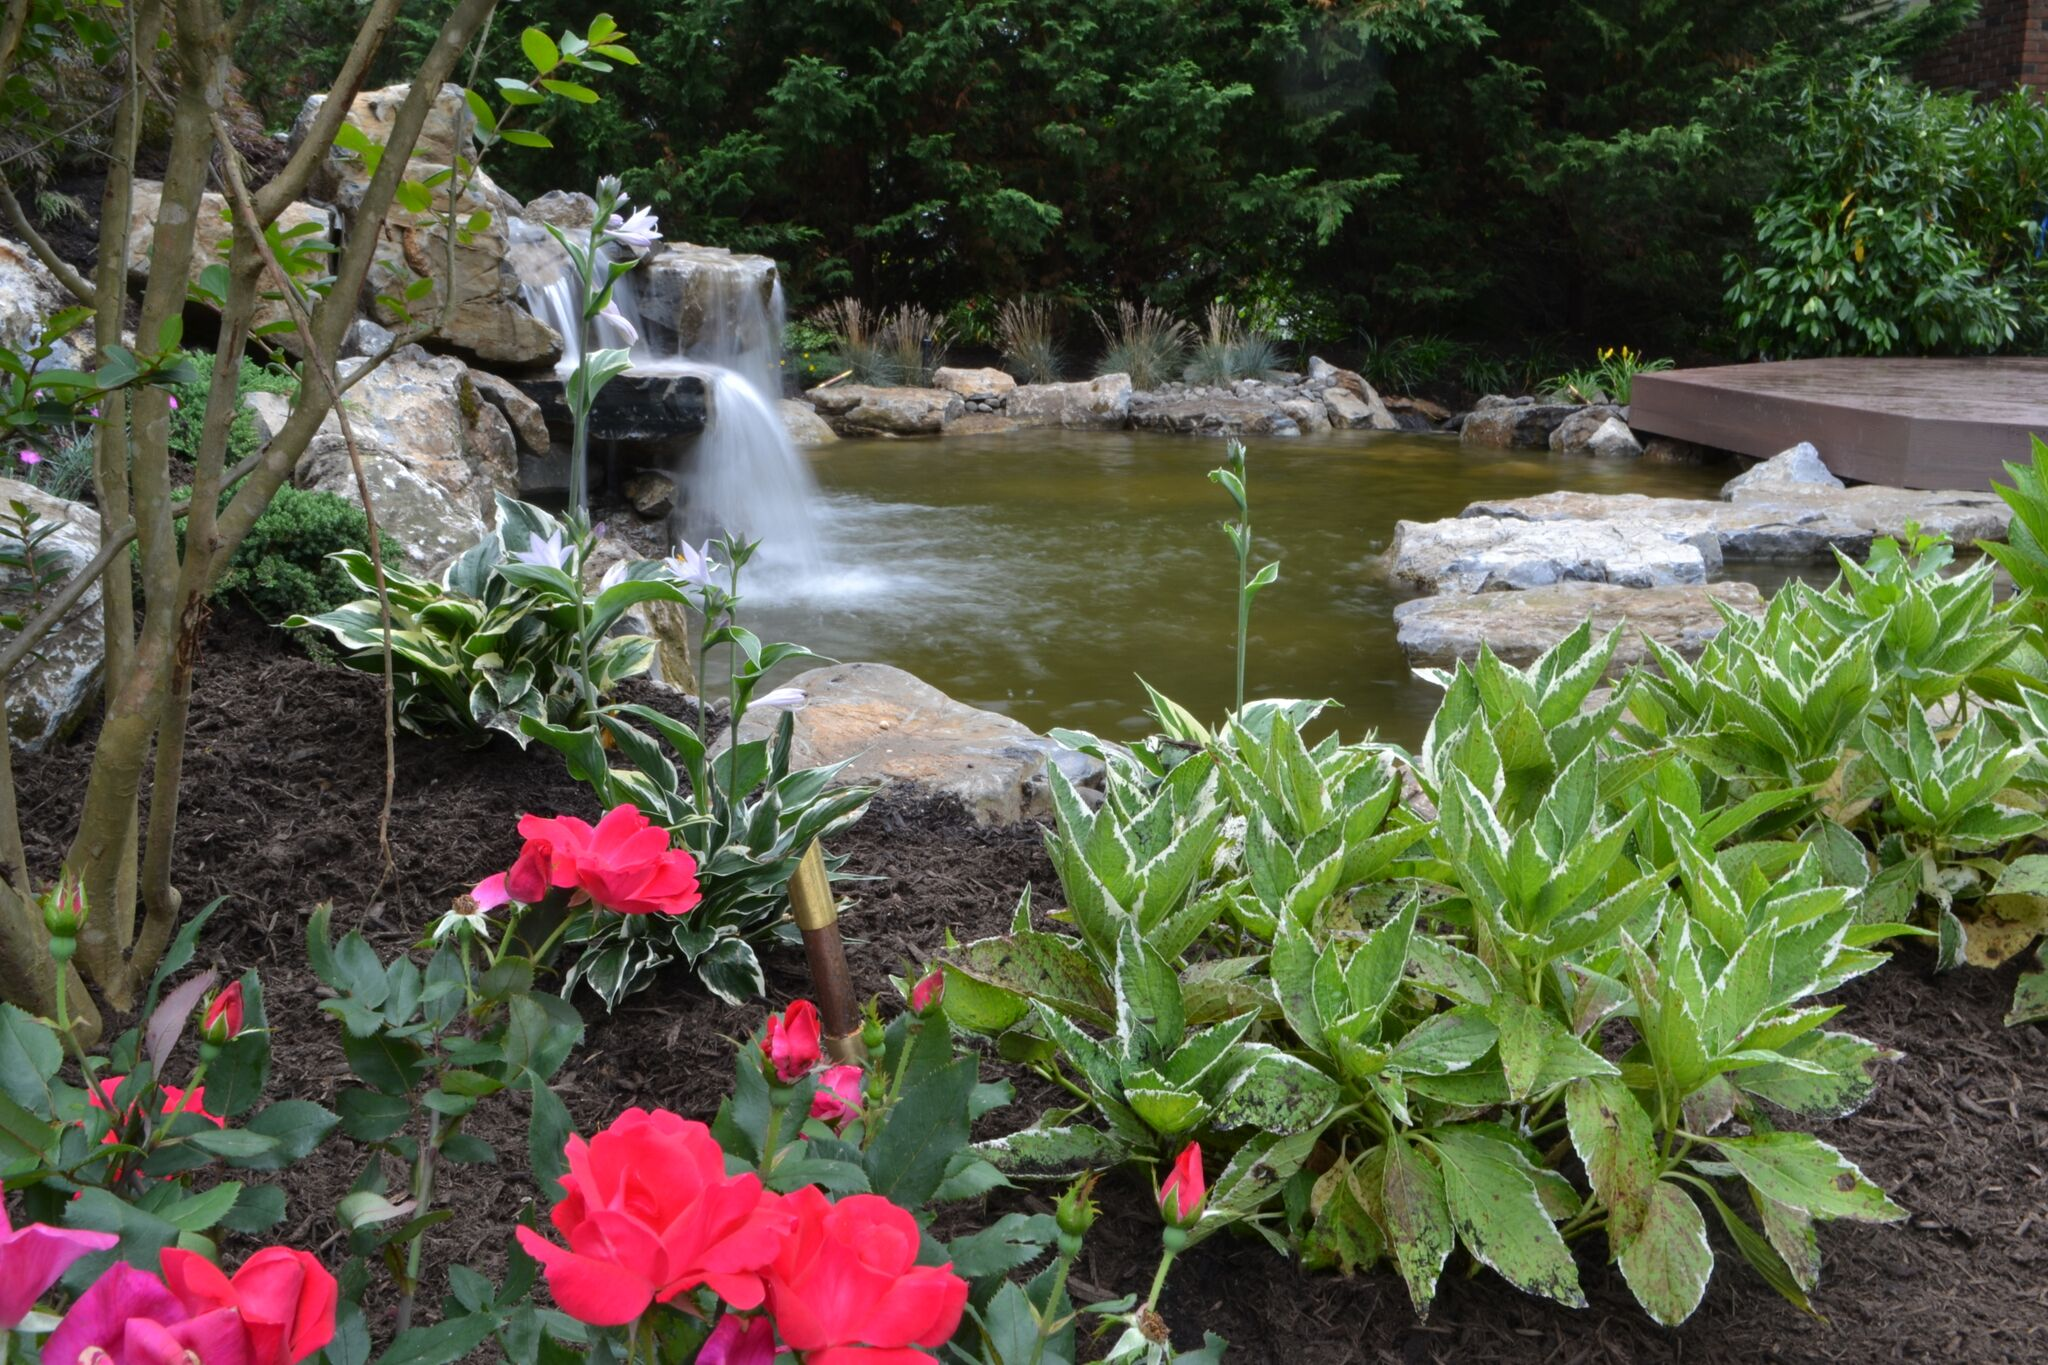 The benefits of aquatic plants and water garden landscaping for Koi pond maintenance near me